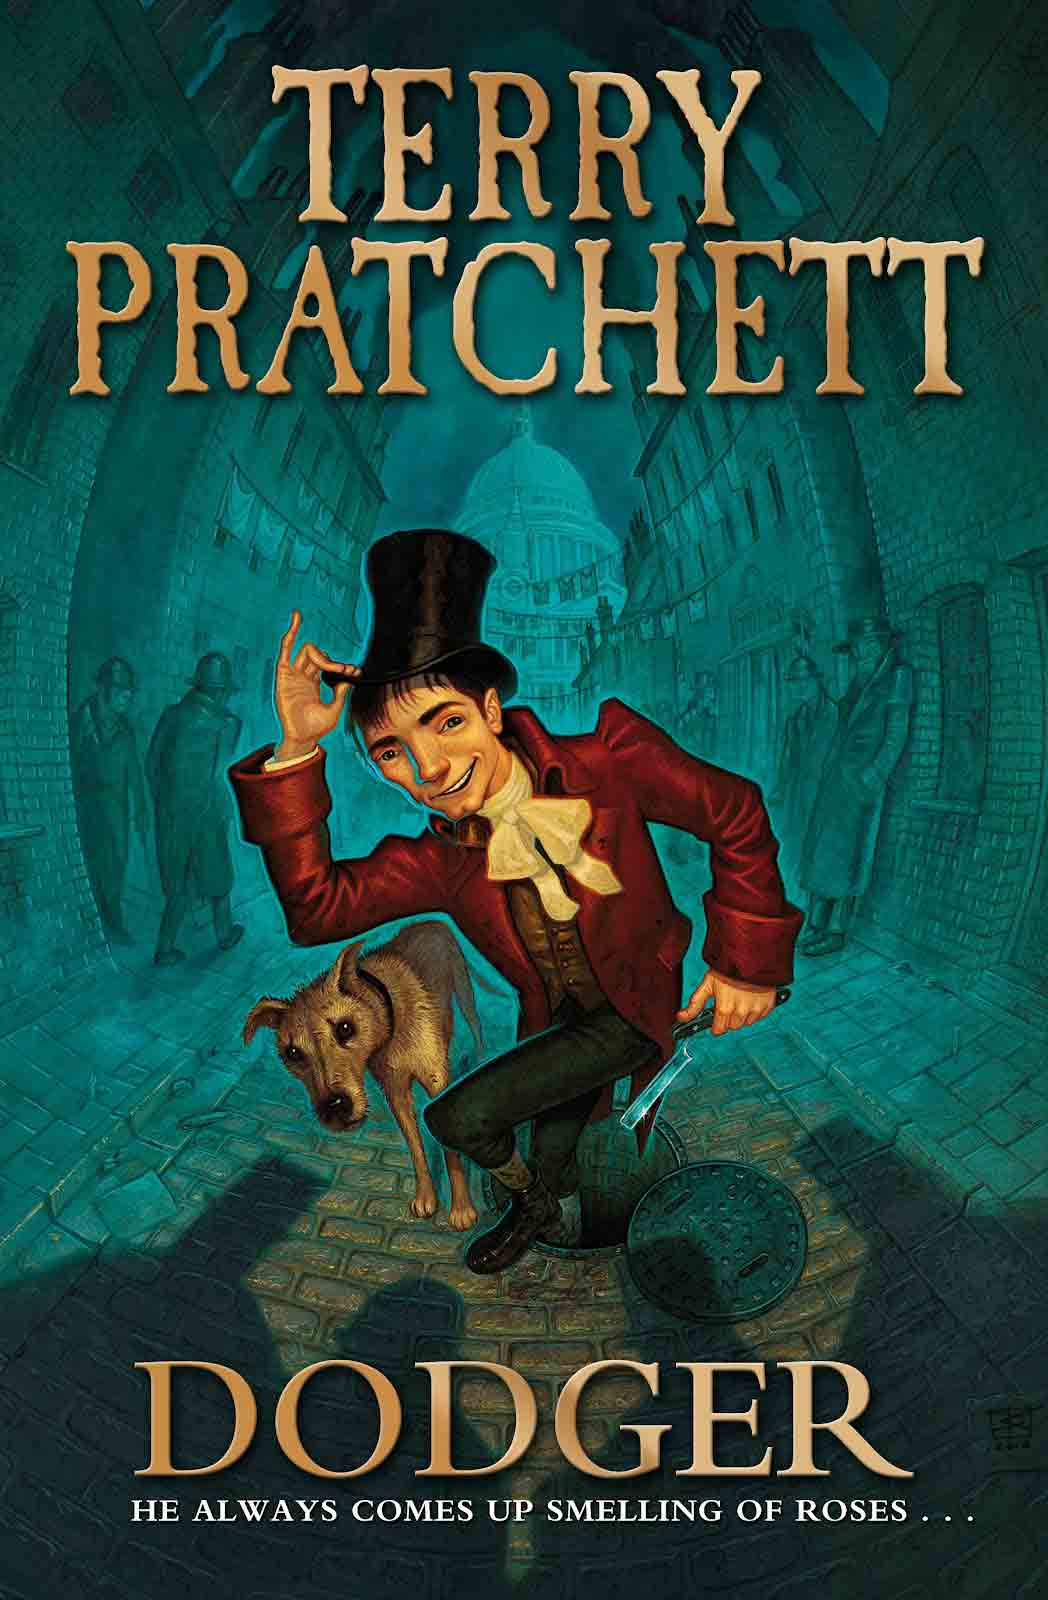 dodger-terry-pratchett